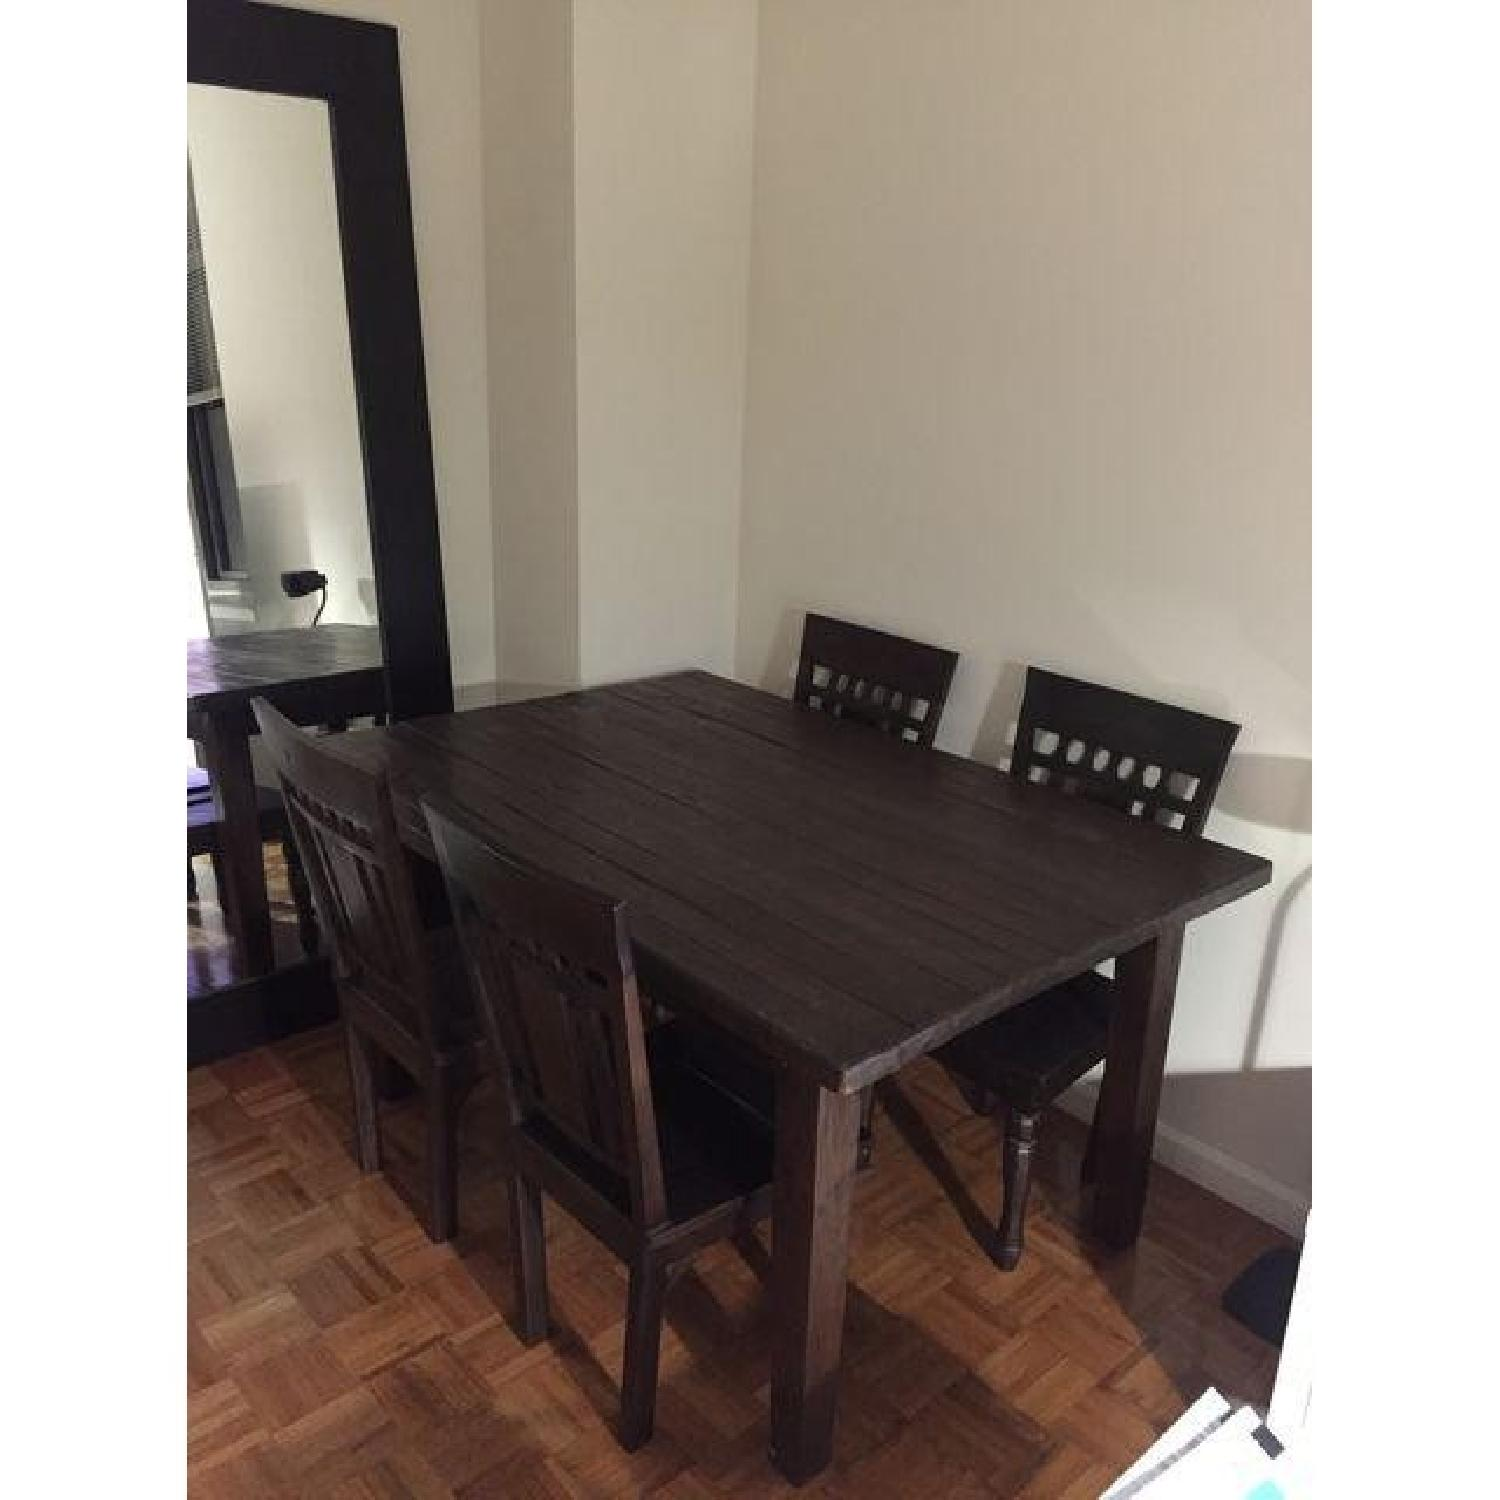 Far East Trading Co. 5 Piece Teak Dining Set - image-1